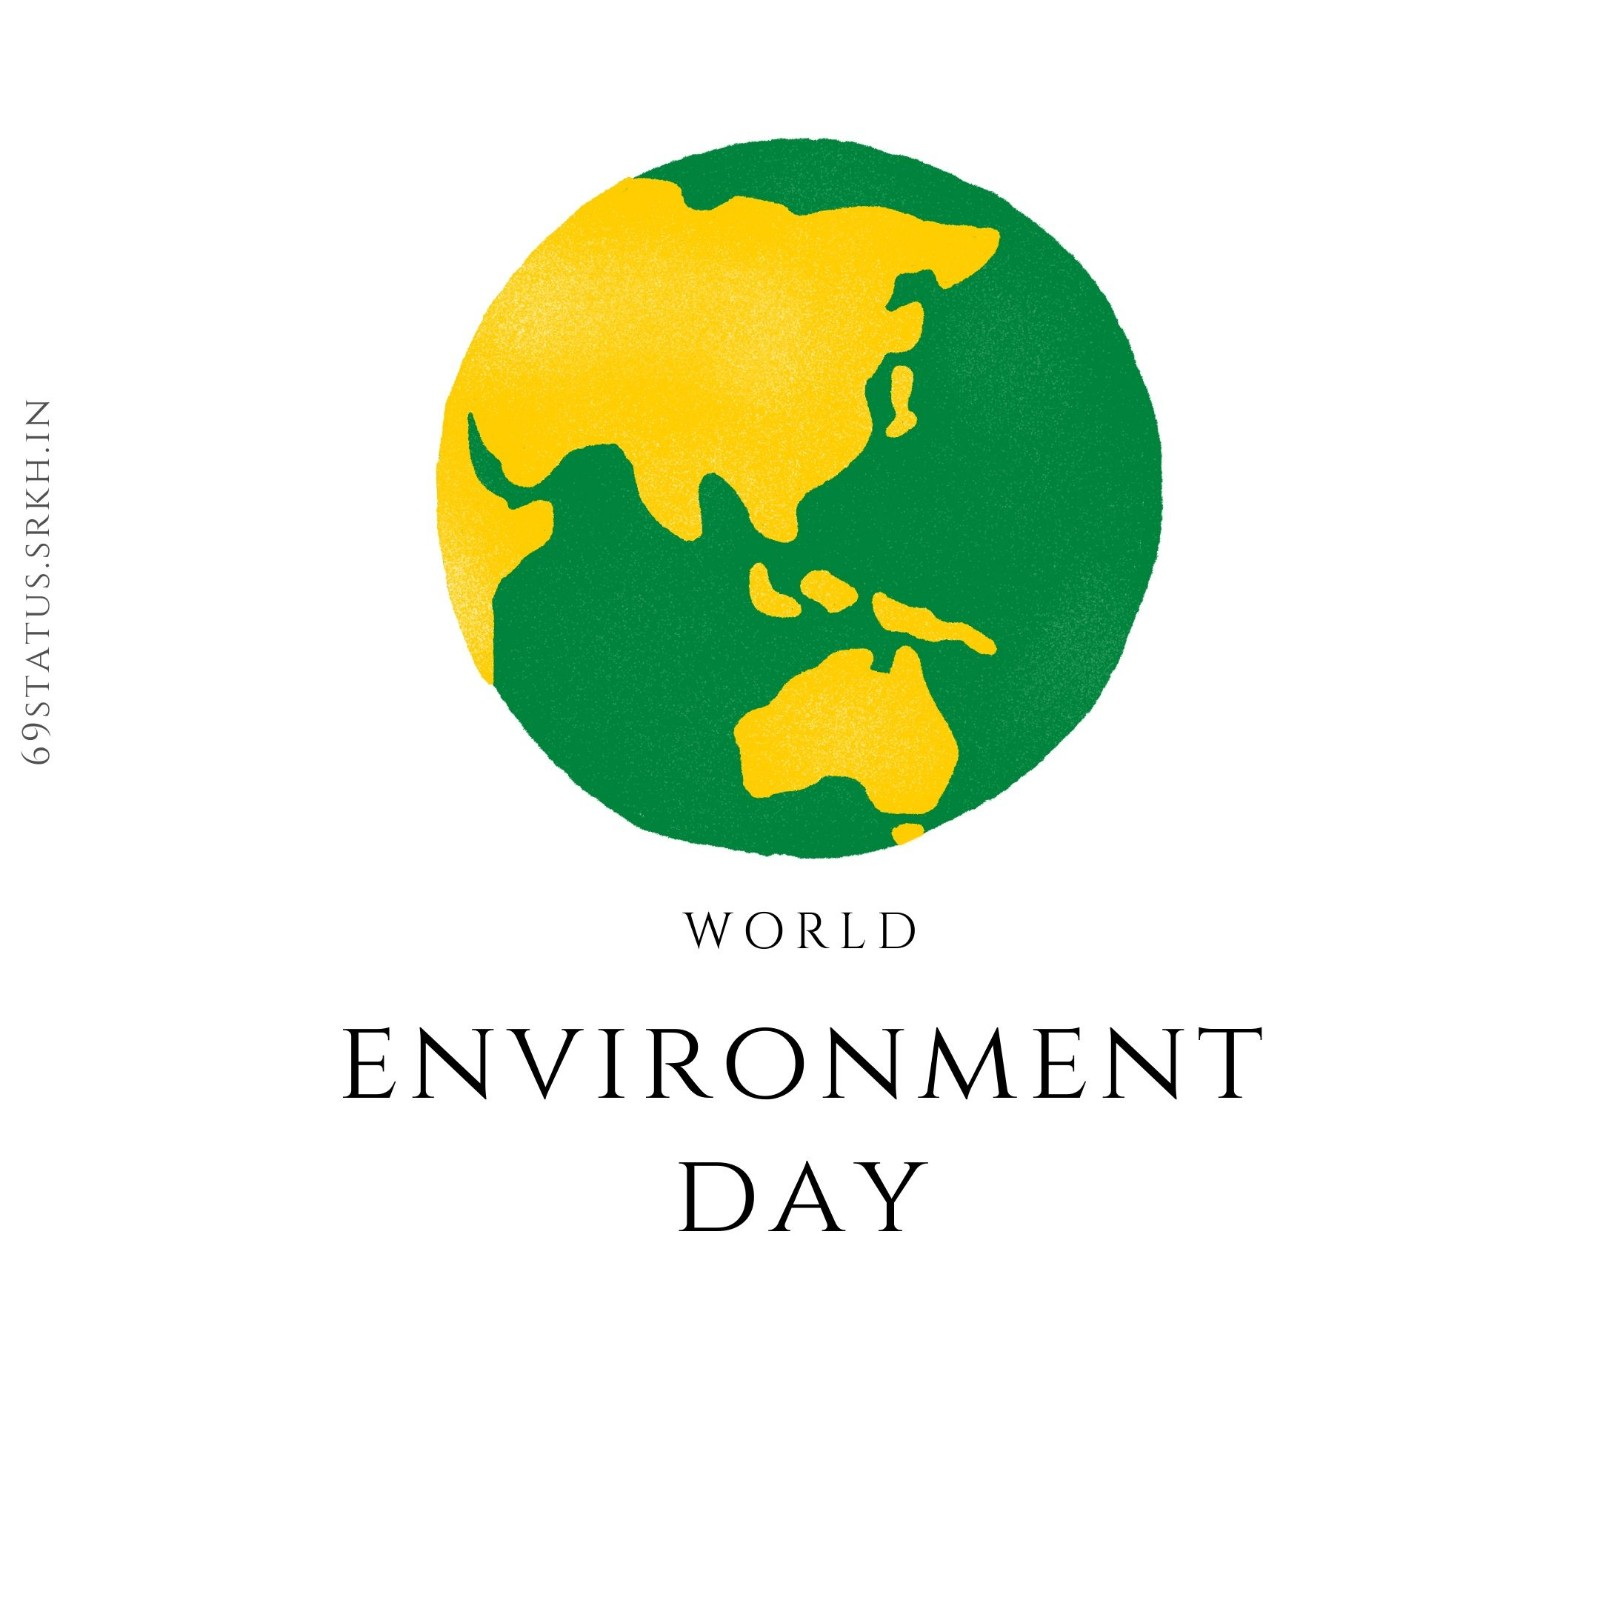 World Environment Day Logo Images Earth Logo full HD free download.